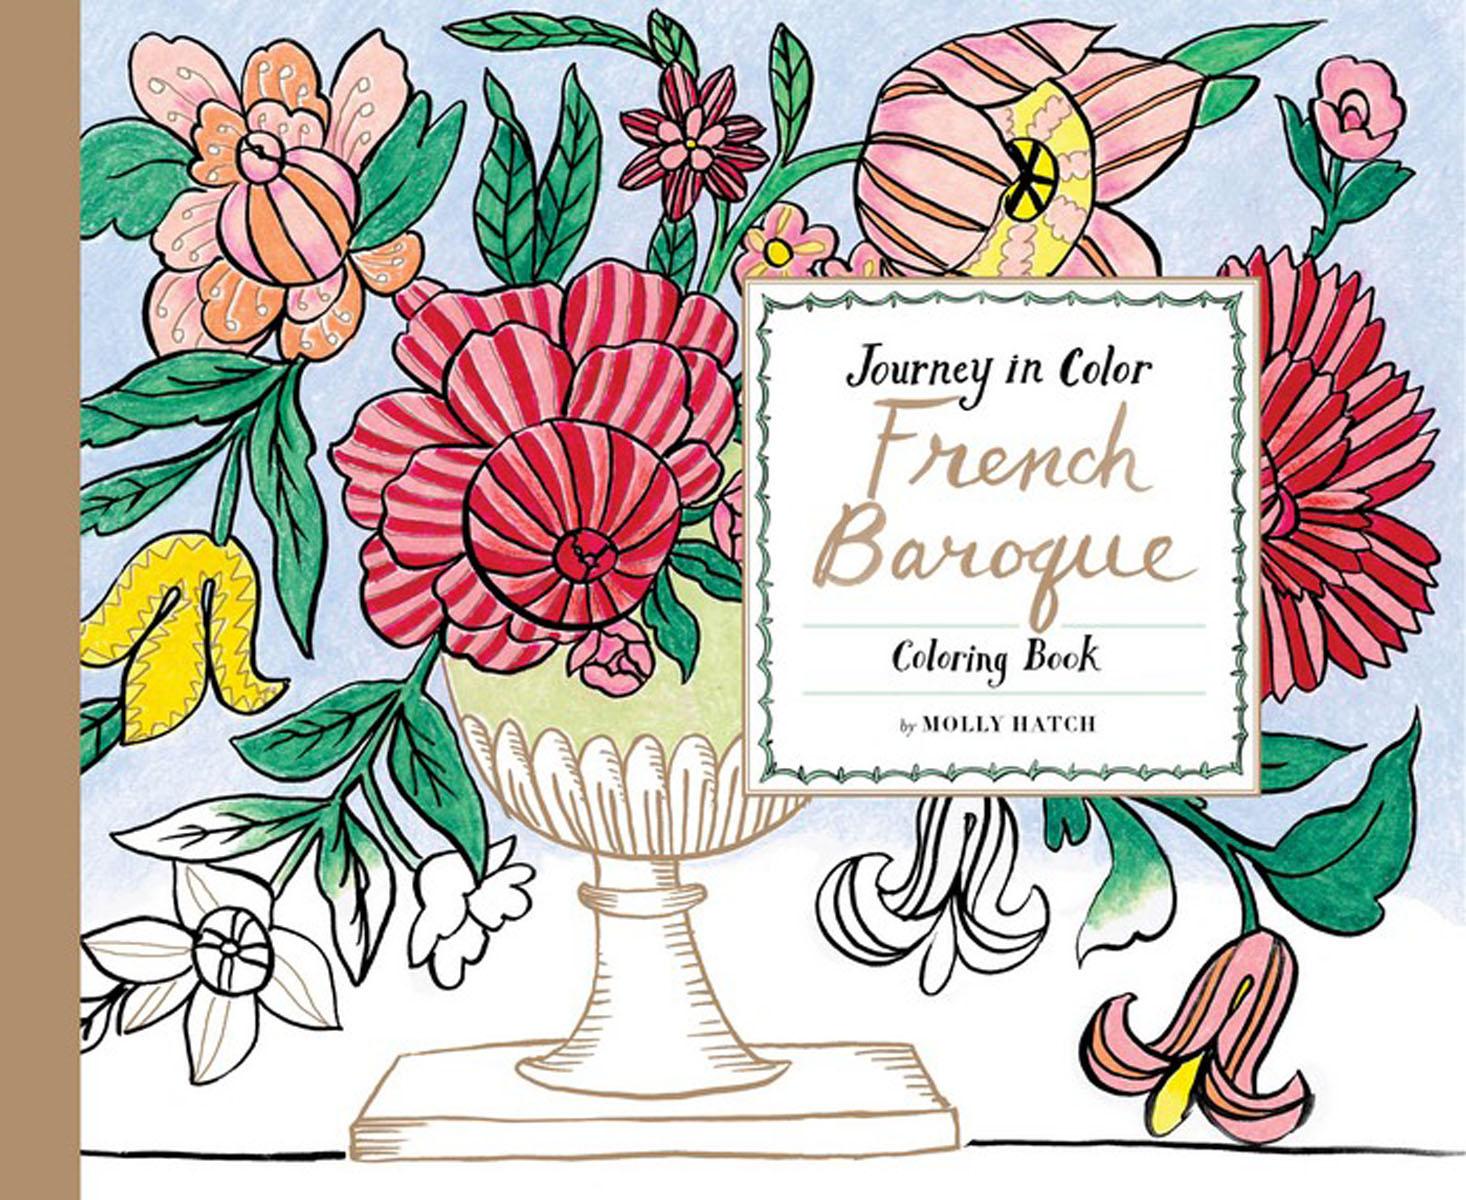 Journey in Color: French Baroque Coloring Book coloring of trees